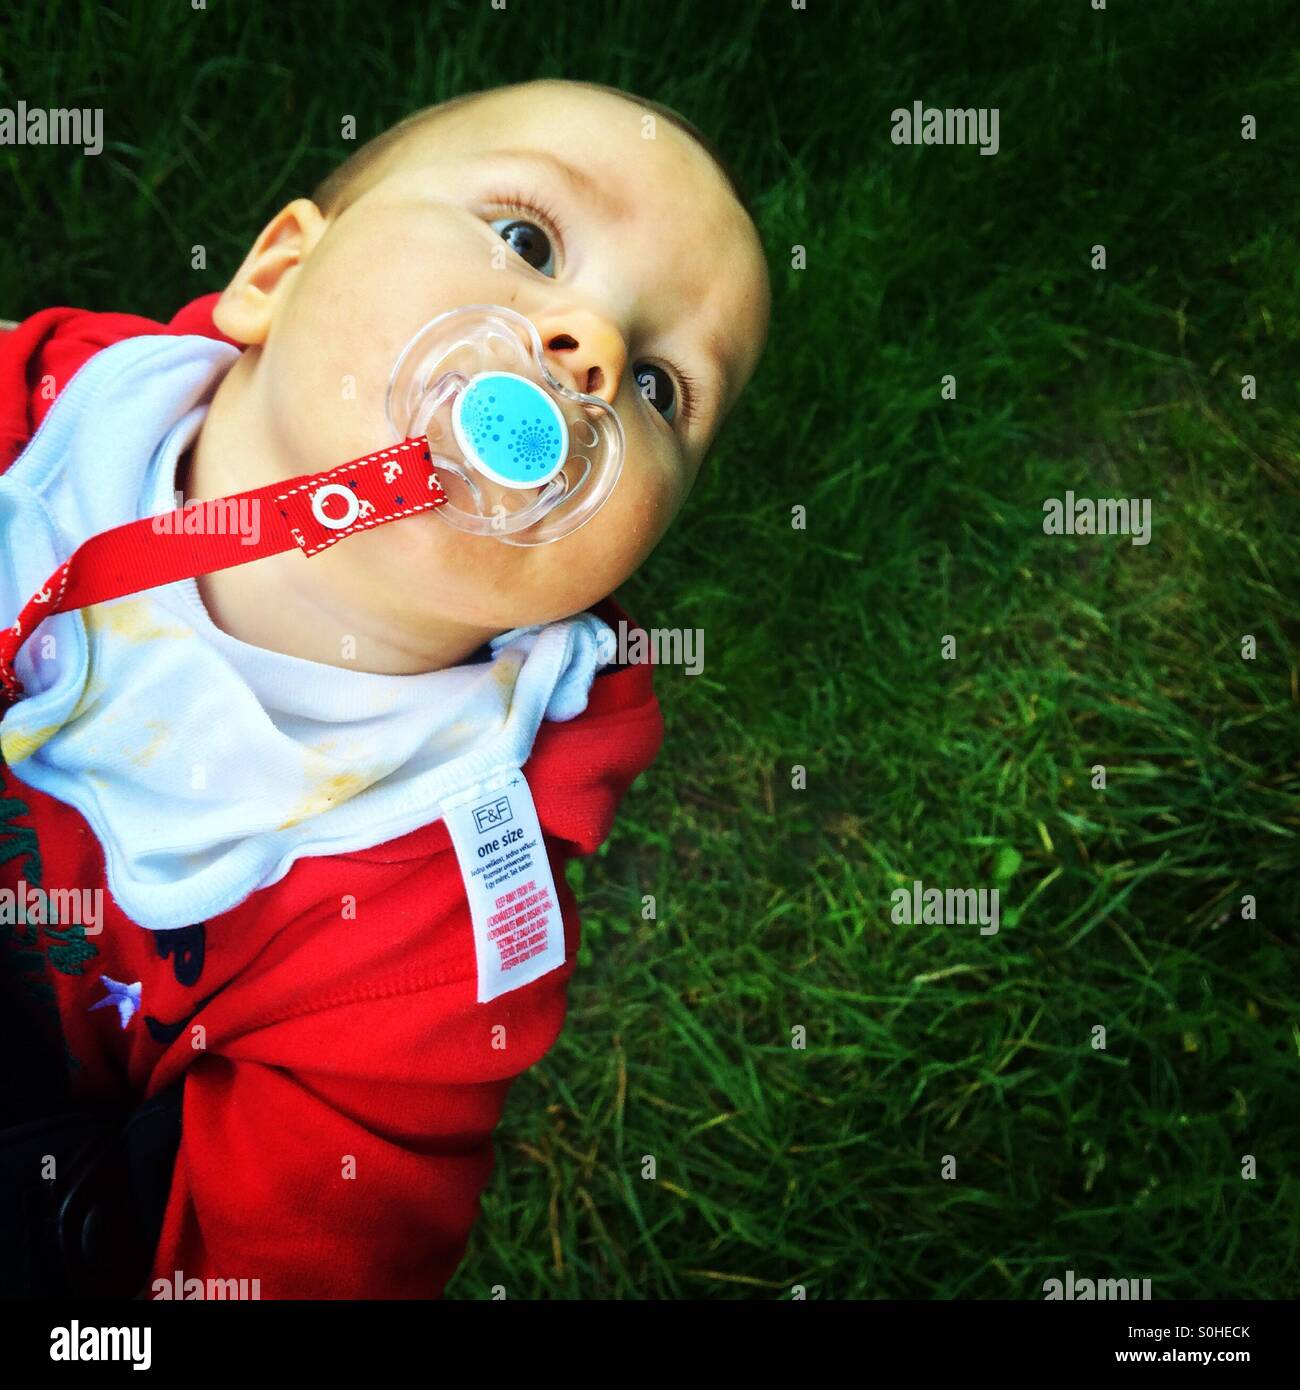 Baby boy with a pacifier is looking up - Stock Image